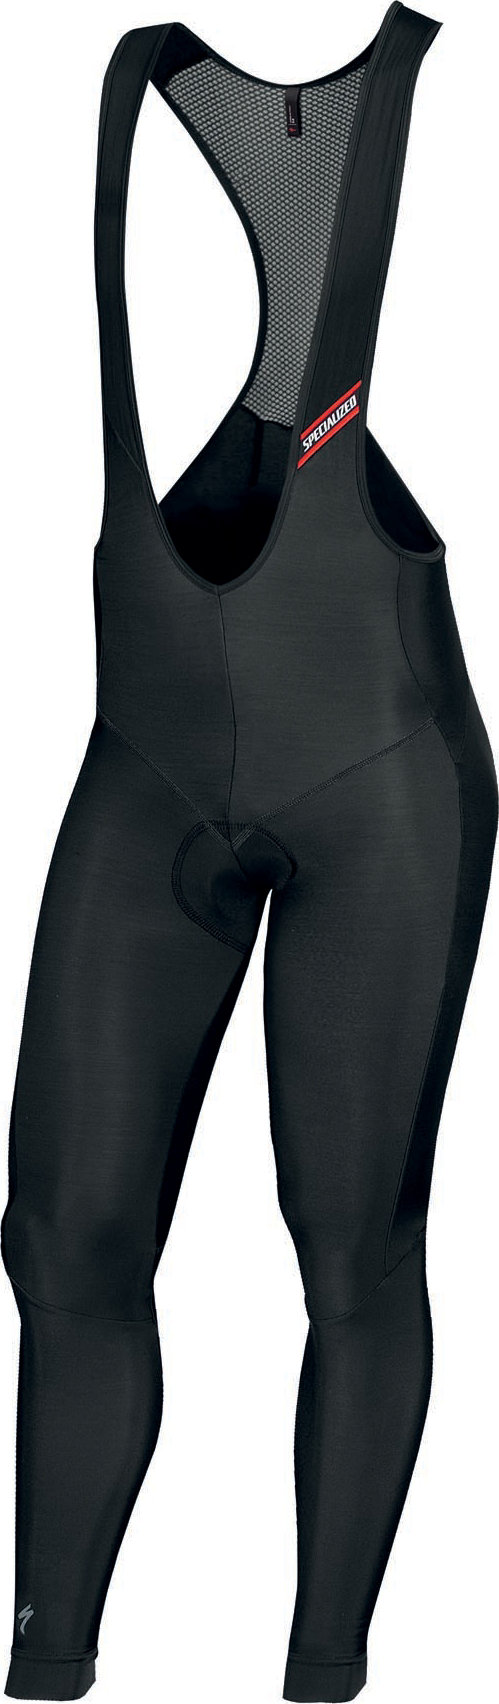 Specialized Therminal RBX Comp Cycling Bib Tight Black Medium - Alpha Bikes